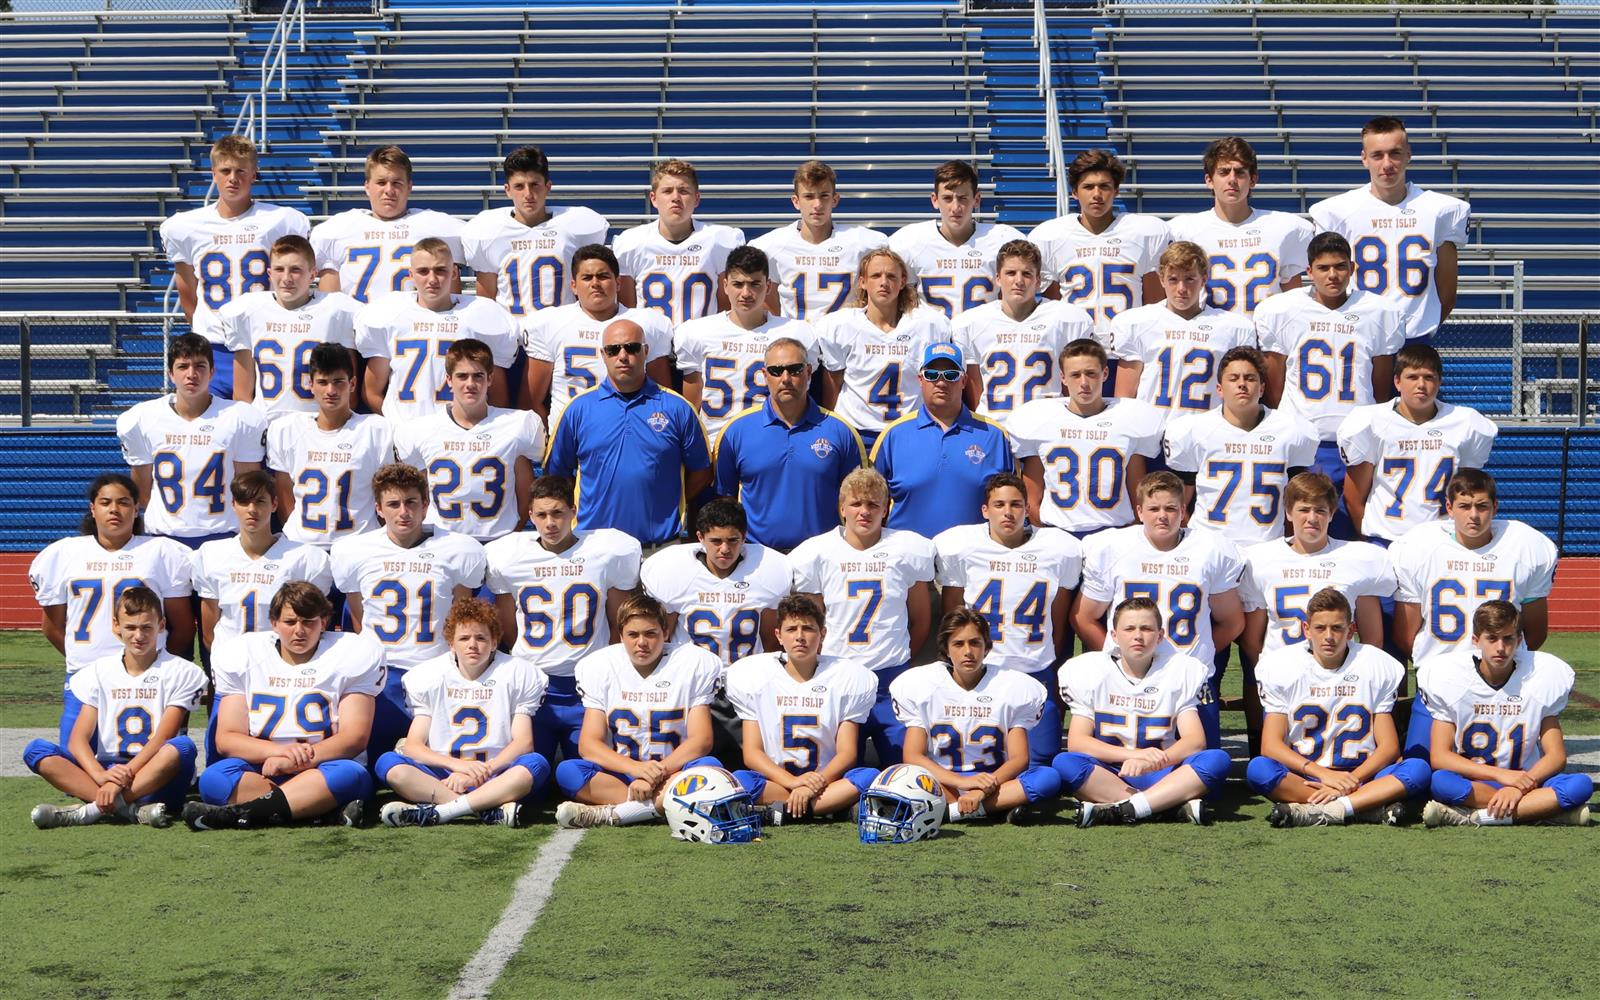 JV Lions Finish Football Season Undefeated